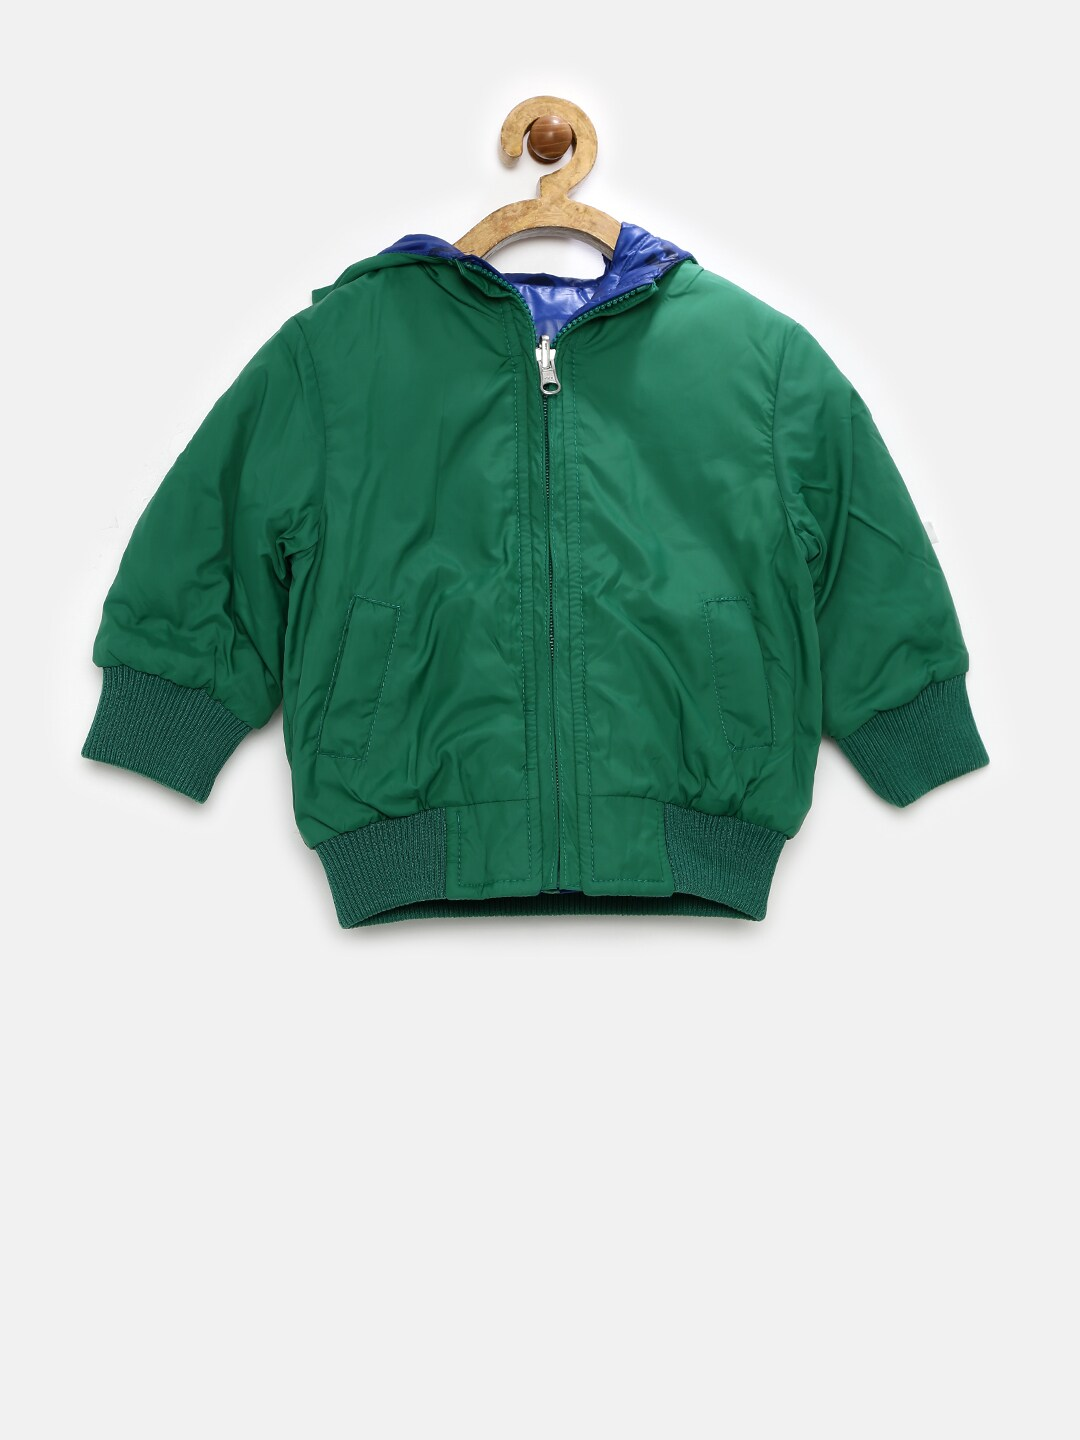 7d405b514b95 UCB Jacket - Buy United Colors of Benetton Jackets   Coats